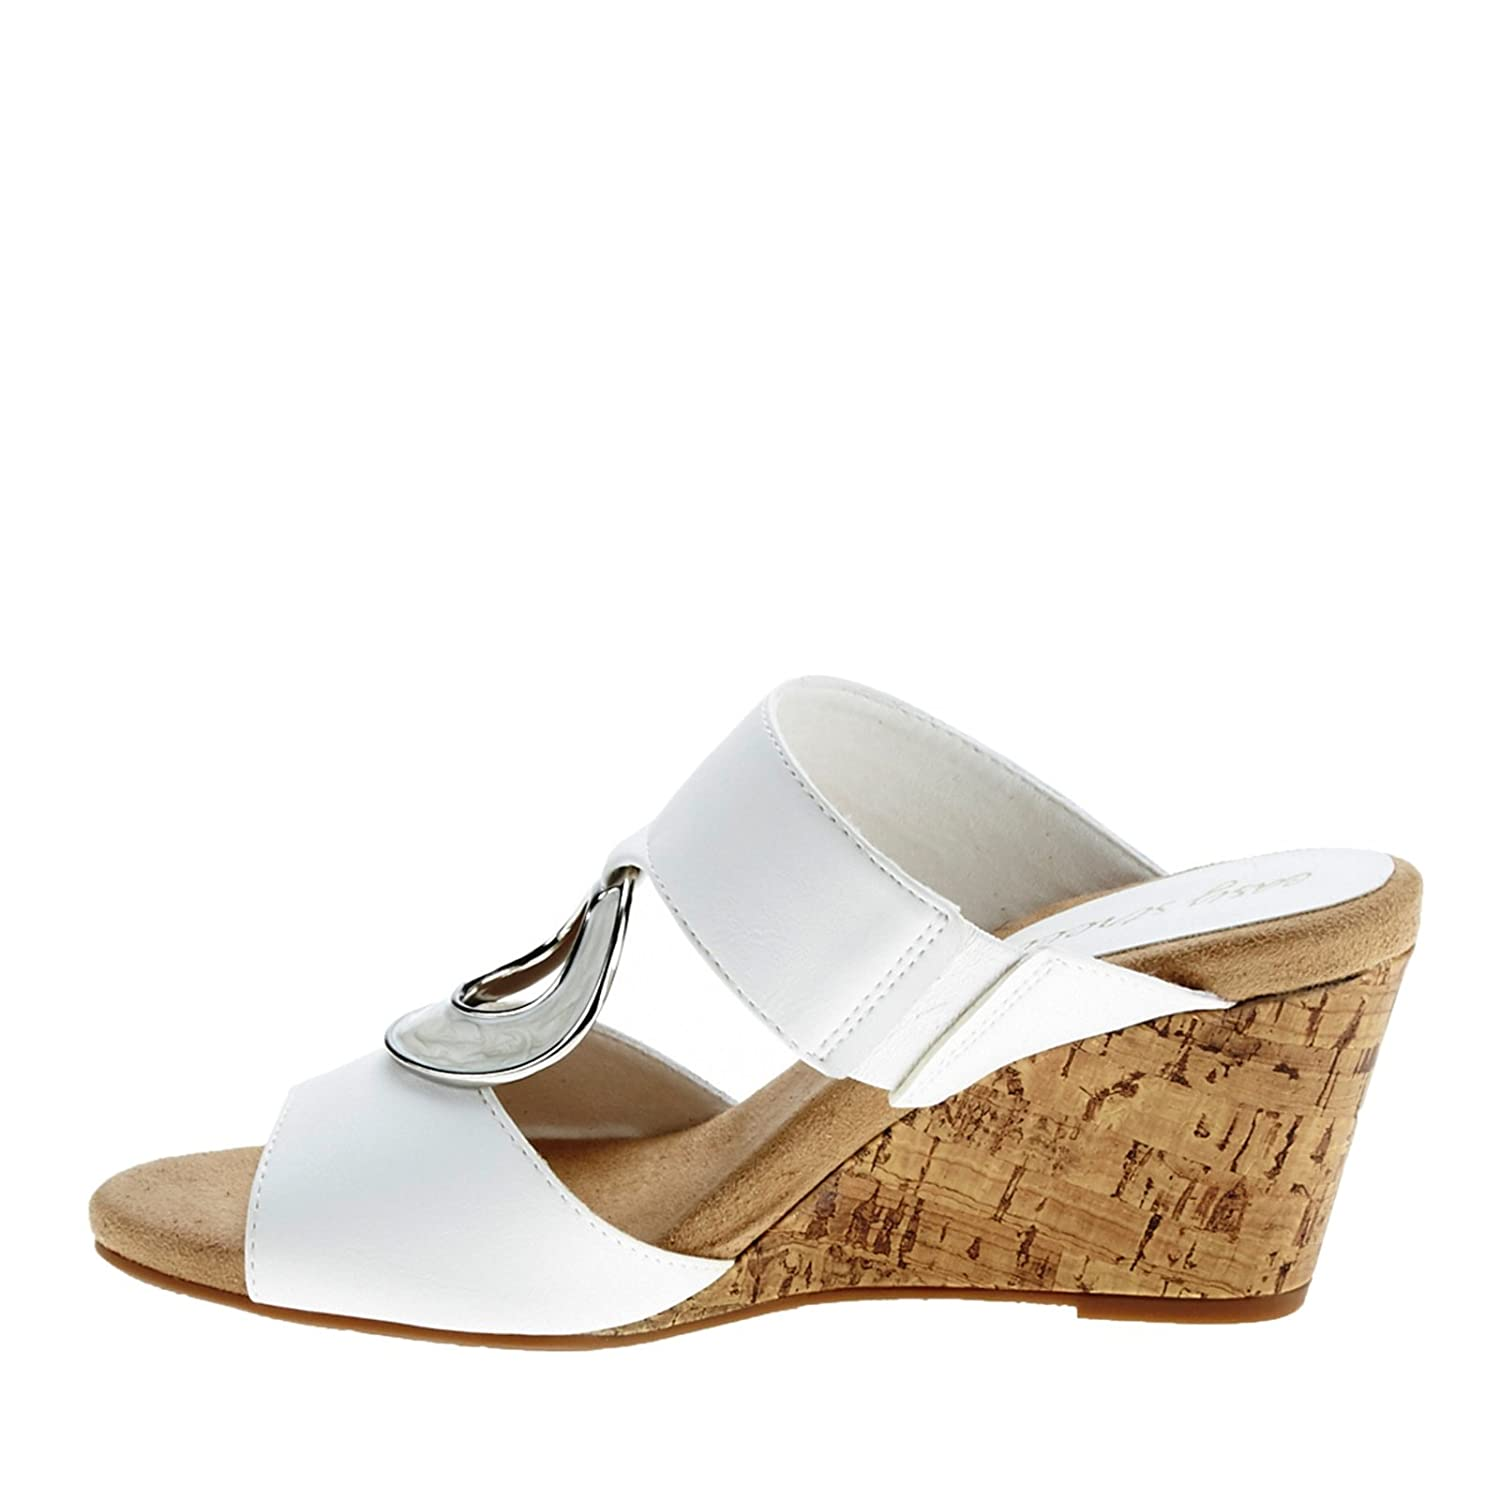 Easy Street Women's Ever Wedge Sandal B01AA7SQNU 7 B(M) US|White